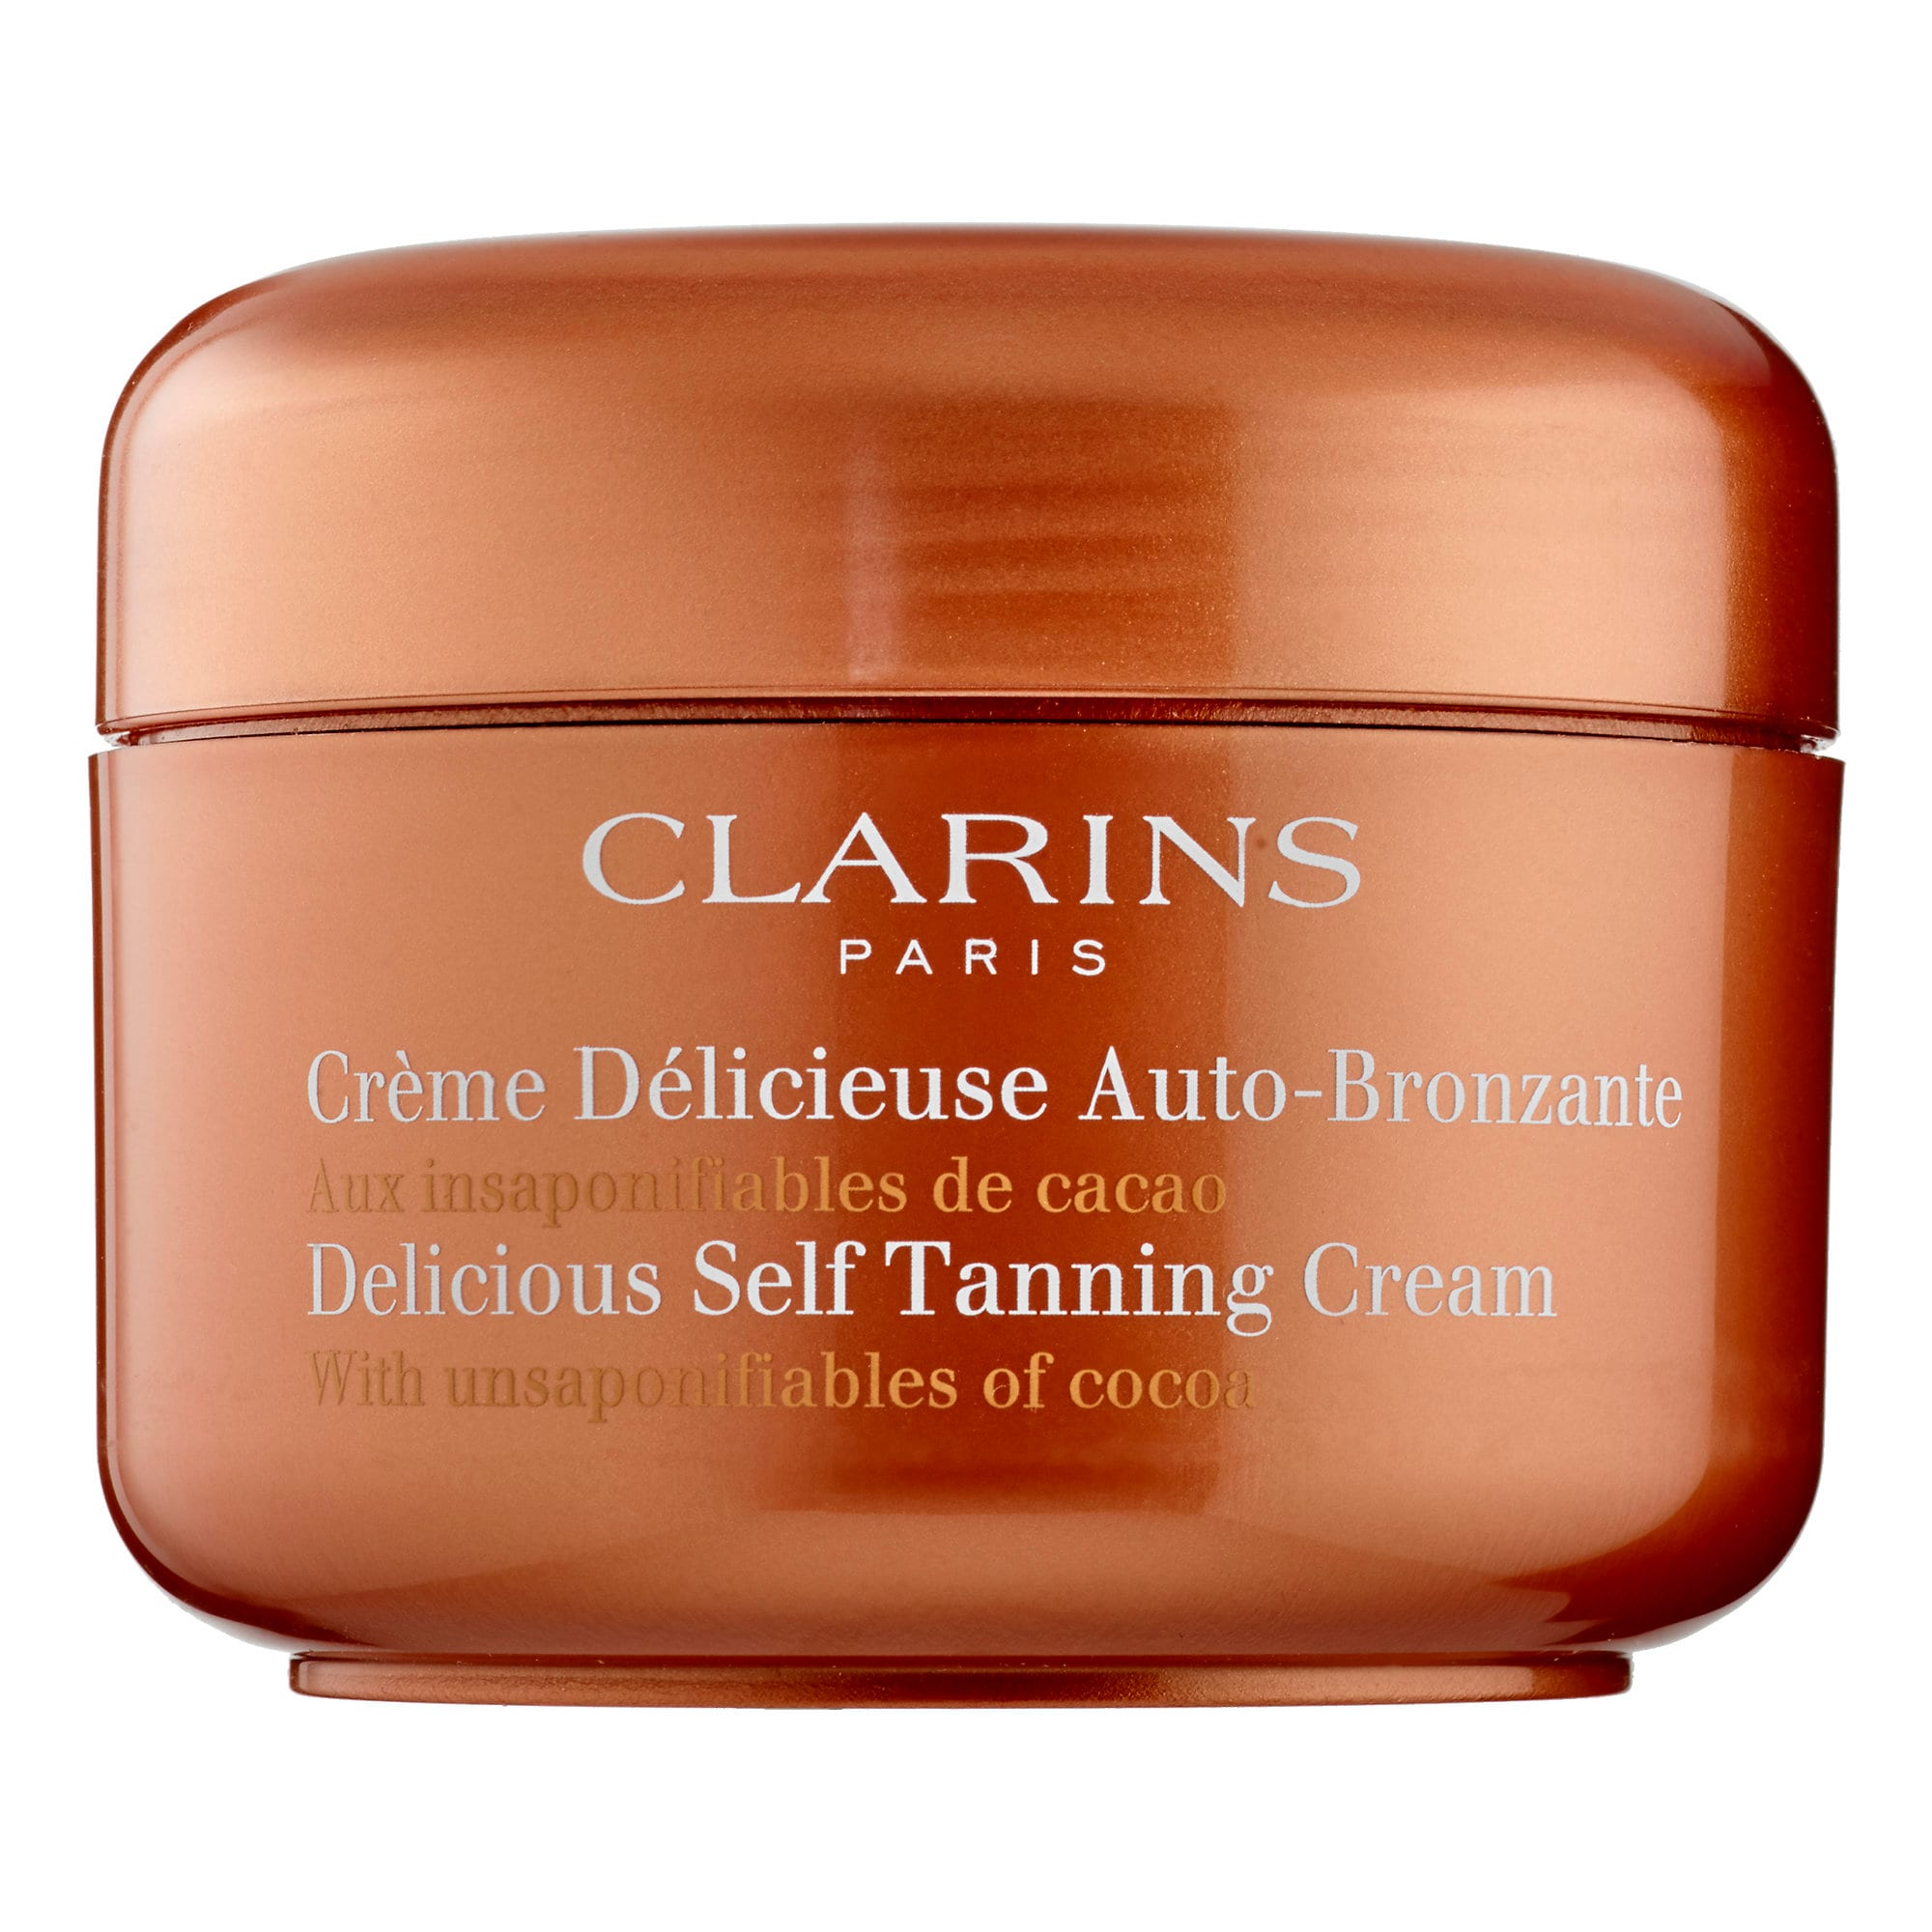 The At Home Self Tanning Innovations Editors Love Ecerr Cream Dr Gold